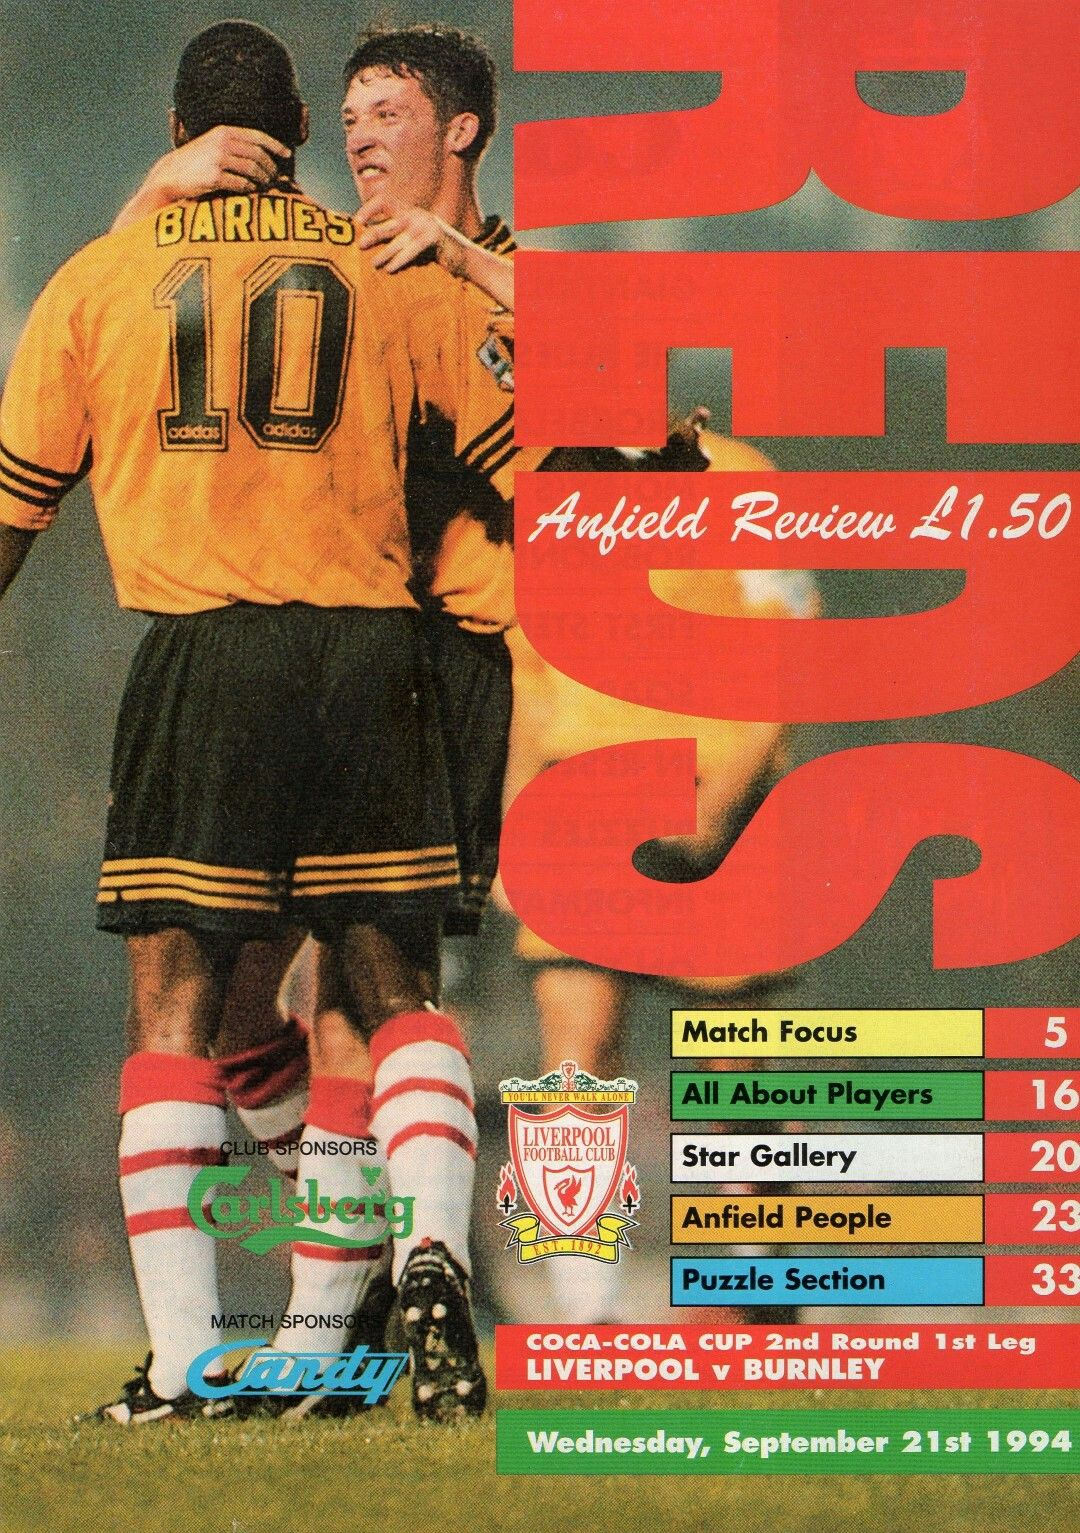 Liverpool 2 Burnley 0 in Sept 1984 at Anfield. Programme cover for the League Cup 2nd Round, 1st Leg.